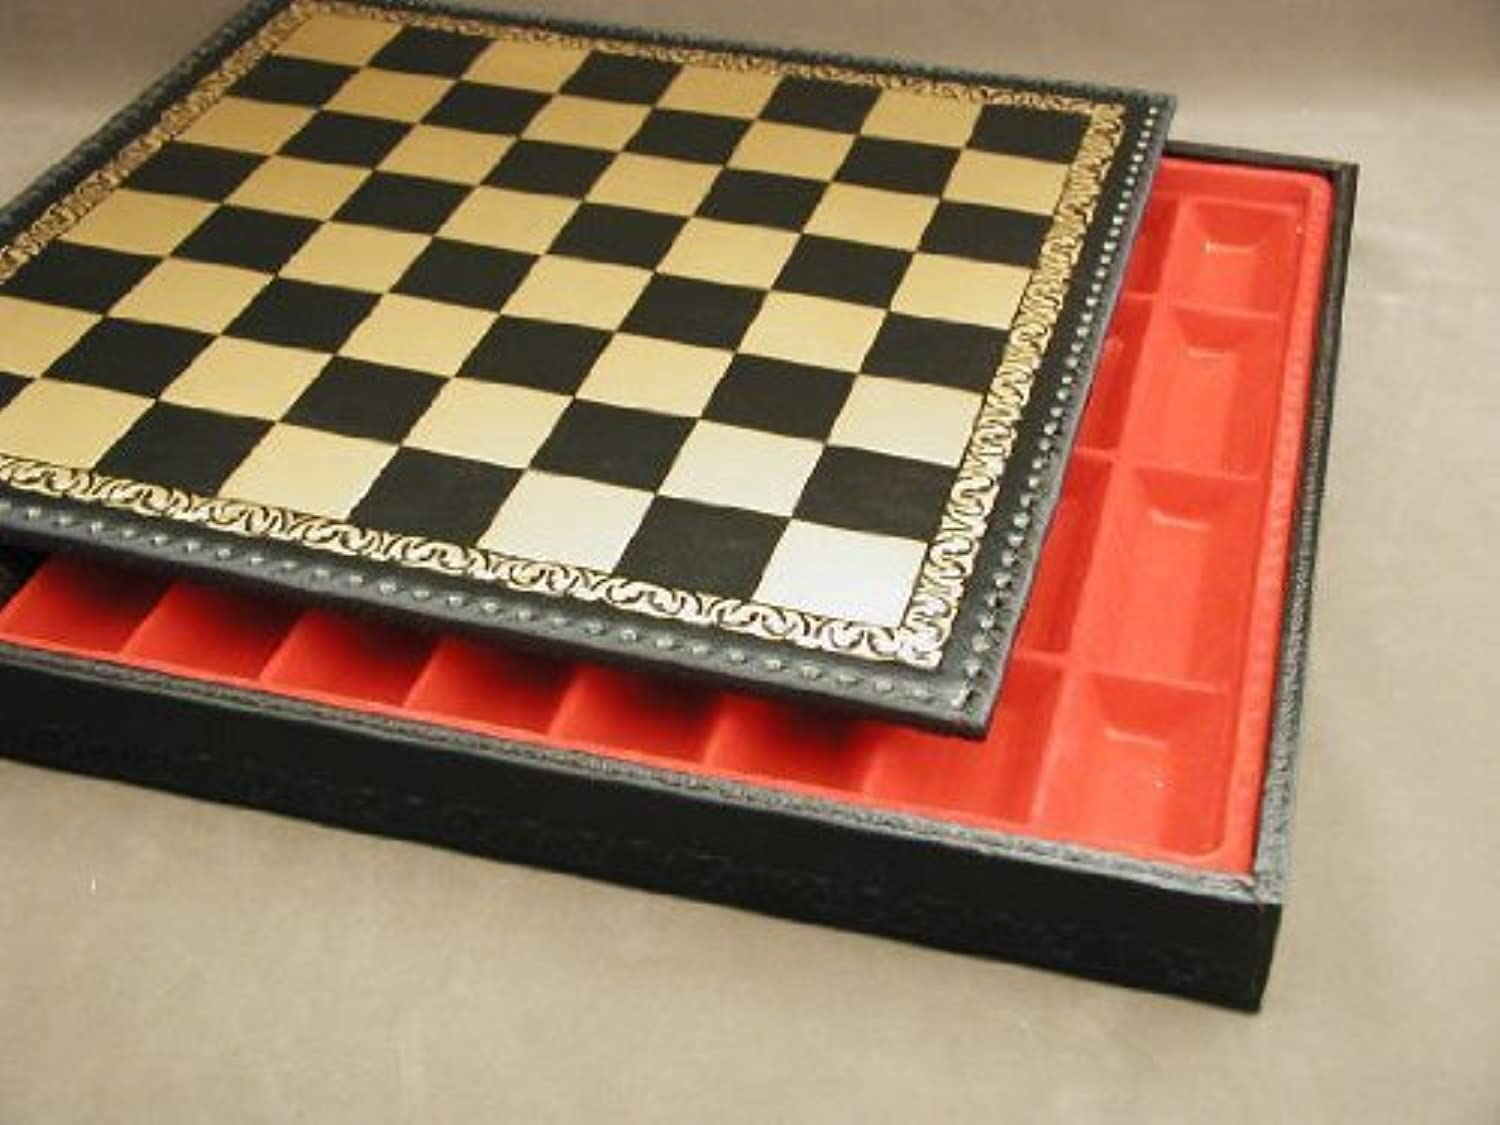 Ital Fama 221GN Pressed Leather Chess Board and Chest by Ital Fama